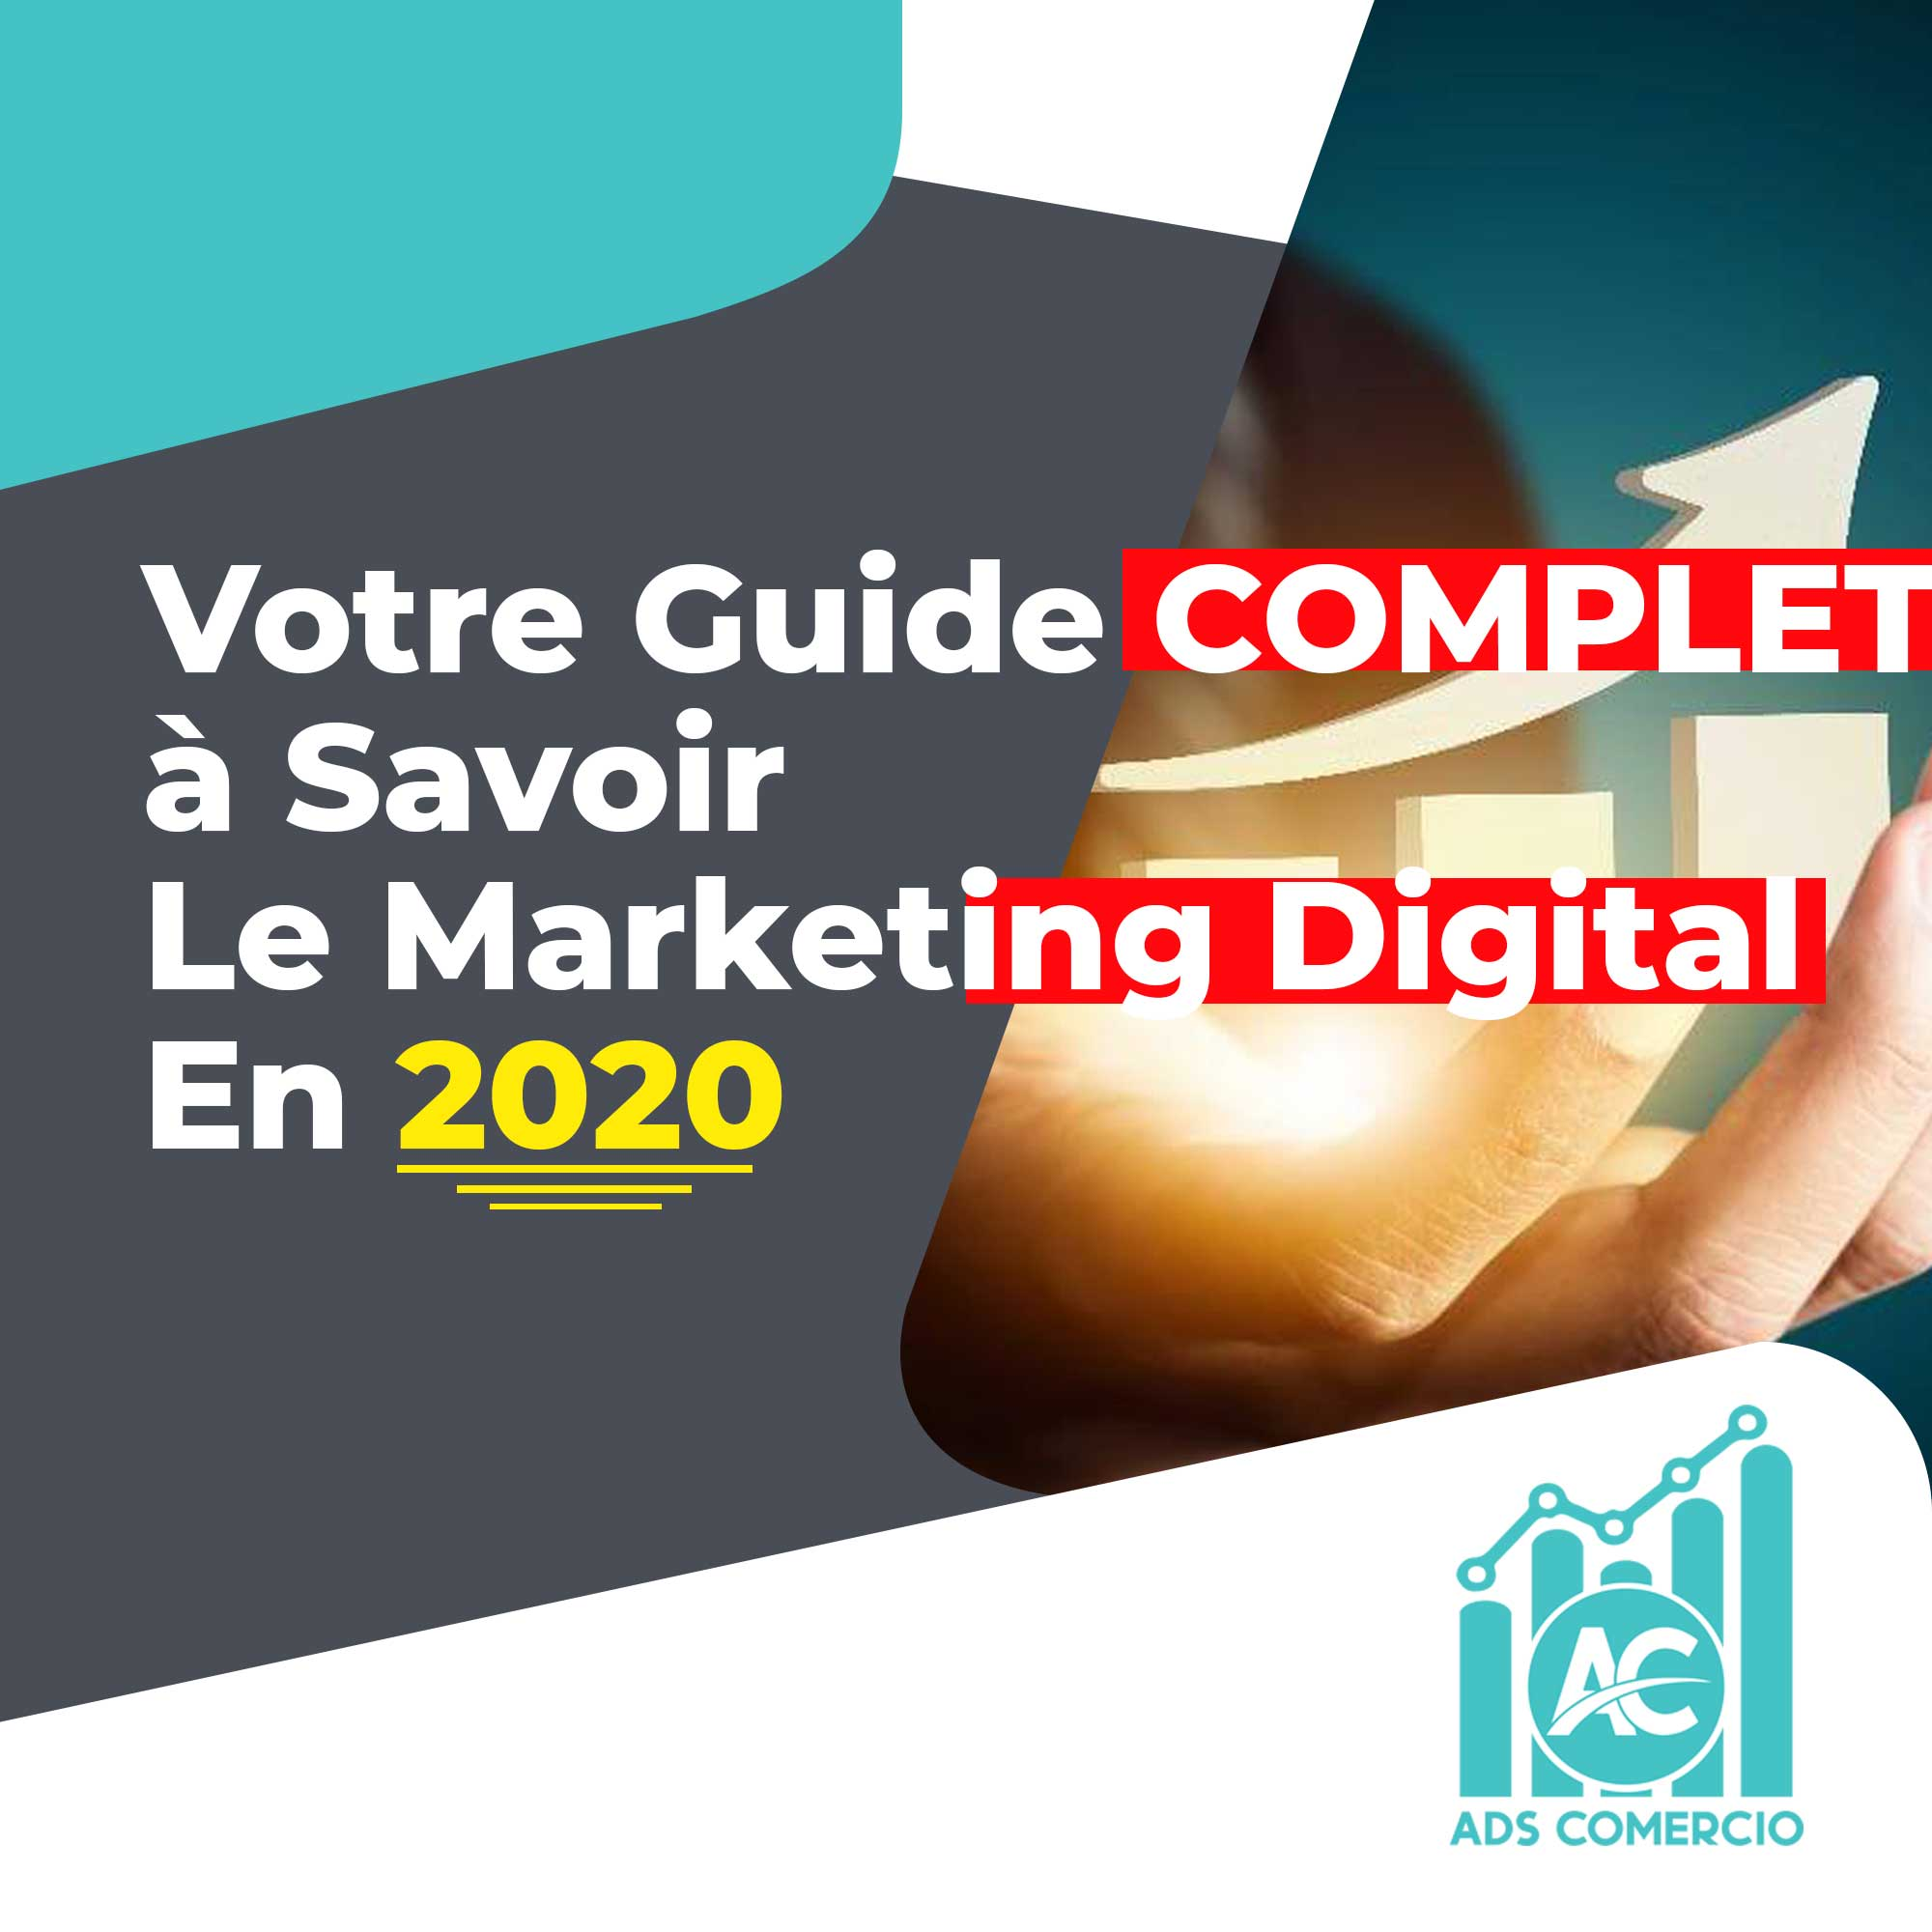 Votre Guide COMPLET à Savoir Le Marketing Digital En 2020